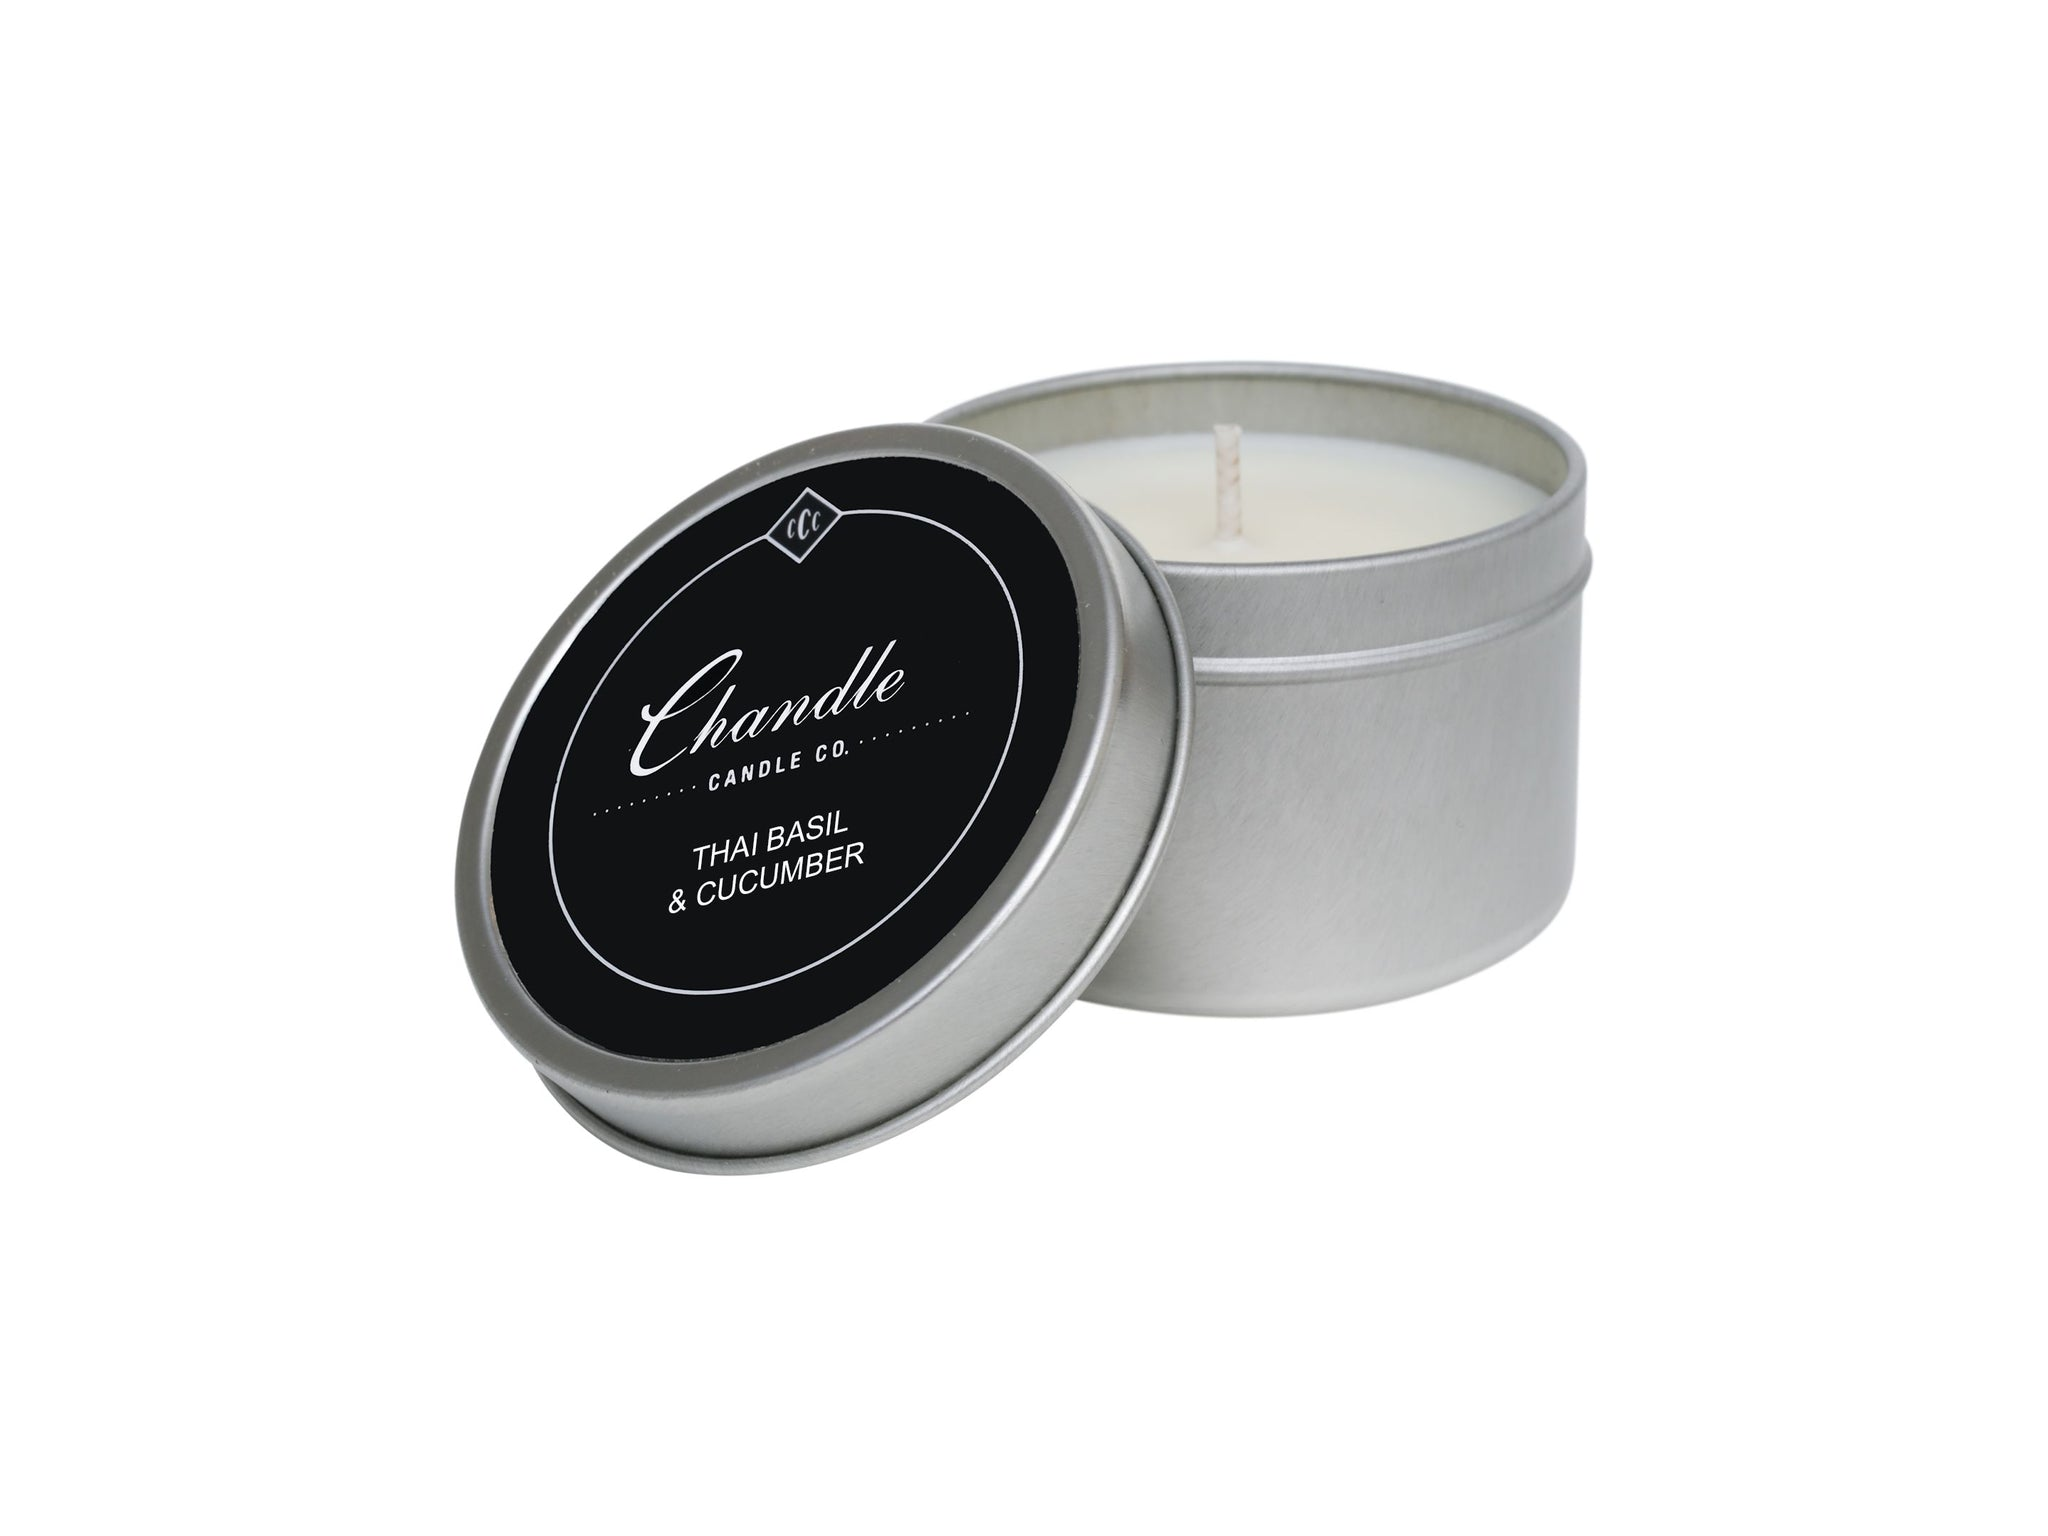 Thai Basil & Cucumber scented travel tin candle